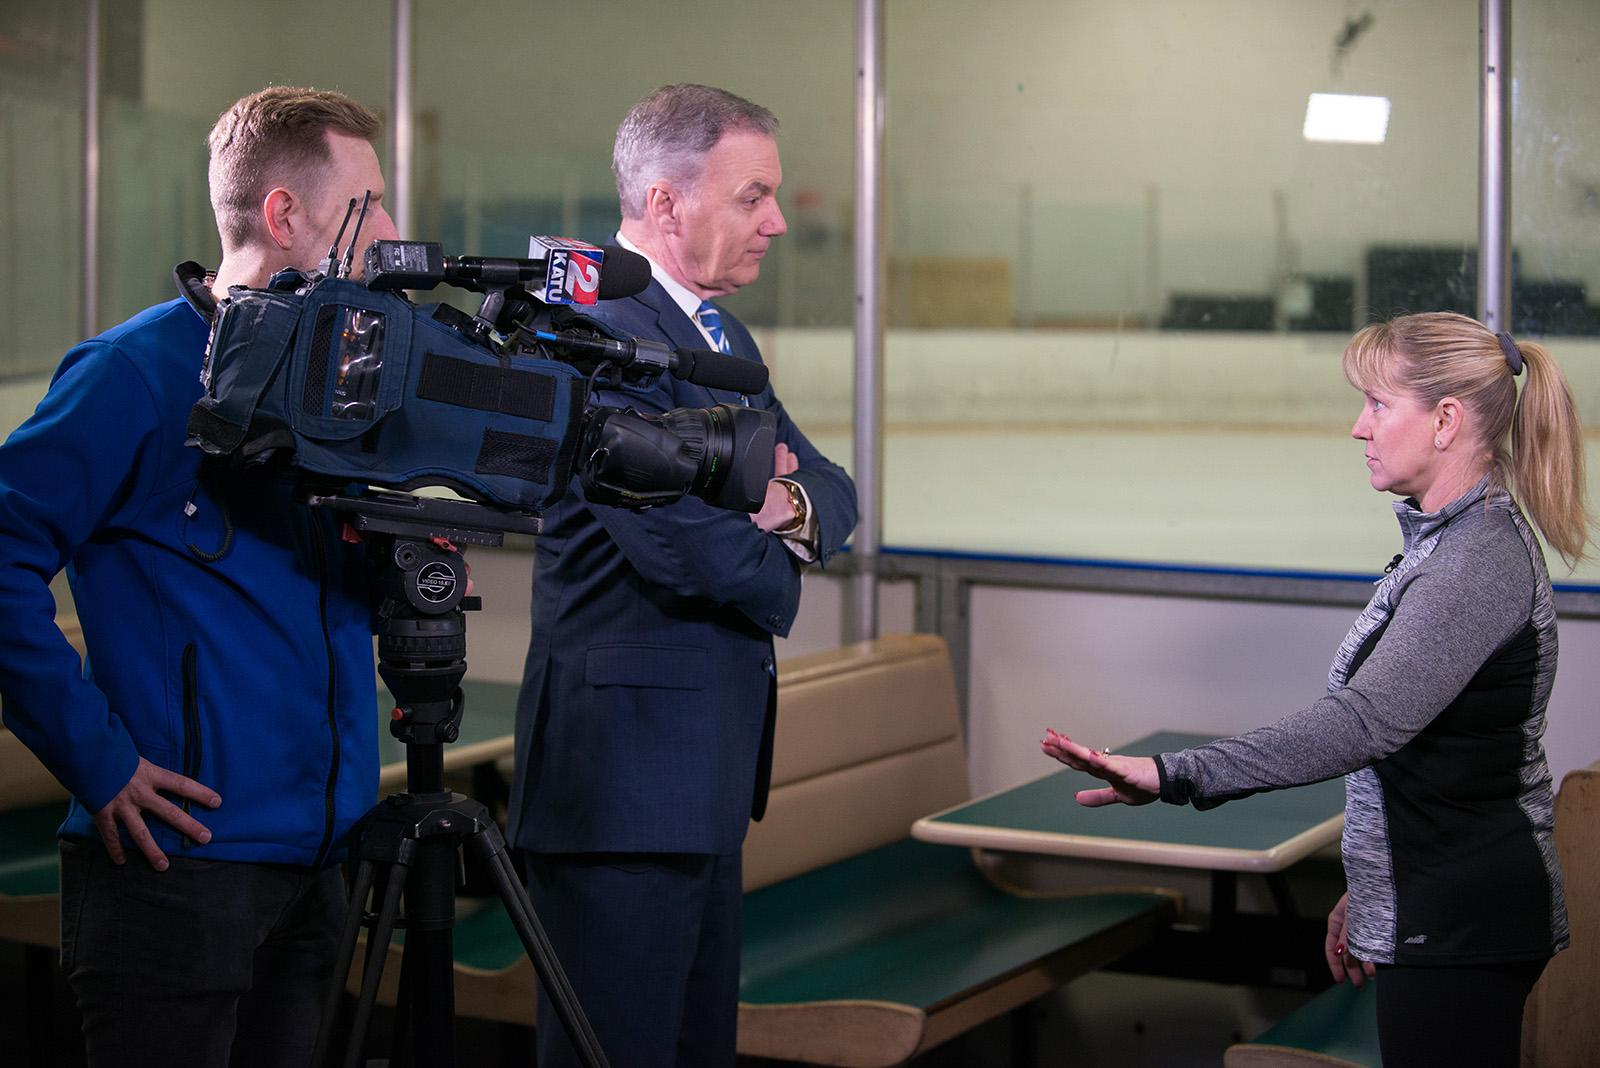 Figure Skating Champion and two-time Olympian Tonya Harding talks with KATU's Steve Dunn at the Mountain View Ice Arena about her thoughts on the recent film 'I, Tonya,' her life - past, present and future, and about how she channeled her rough past into a positive. Tonya also hints of a 'big announcement' in the near future. (KATU News/Tristan Fortsch taken 3-13-2018)